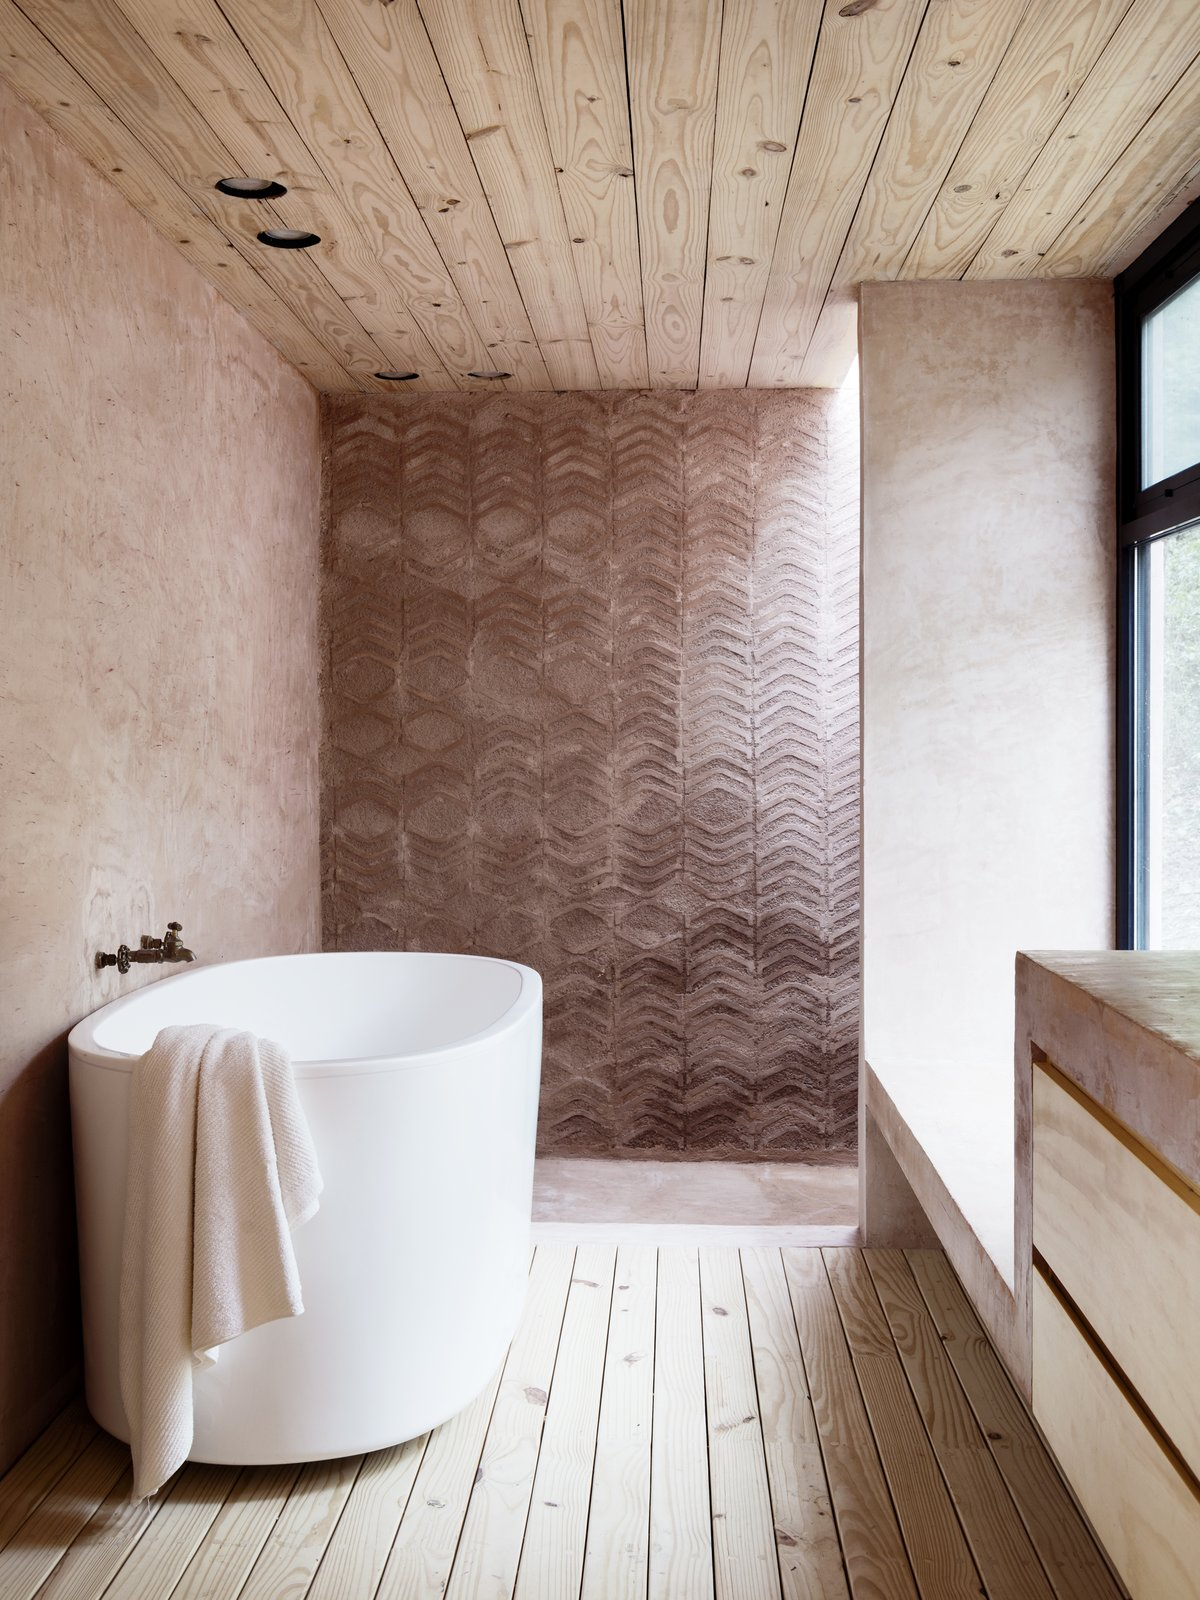 Los Terrenos bathroom with standalone tub and earth brick walls